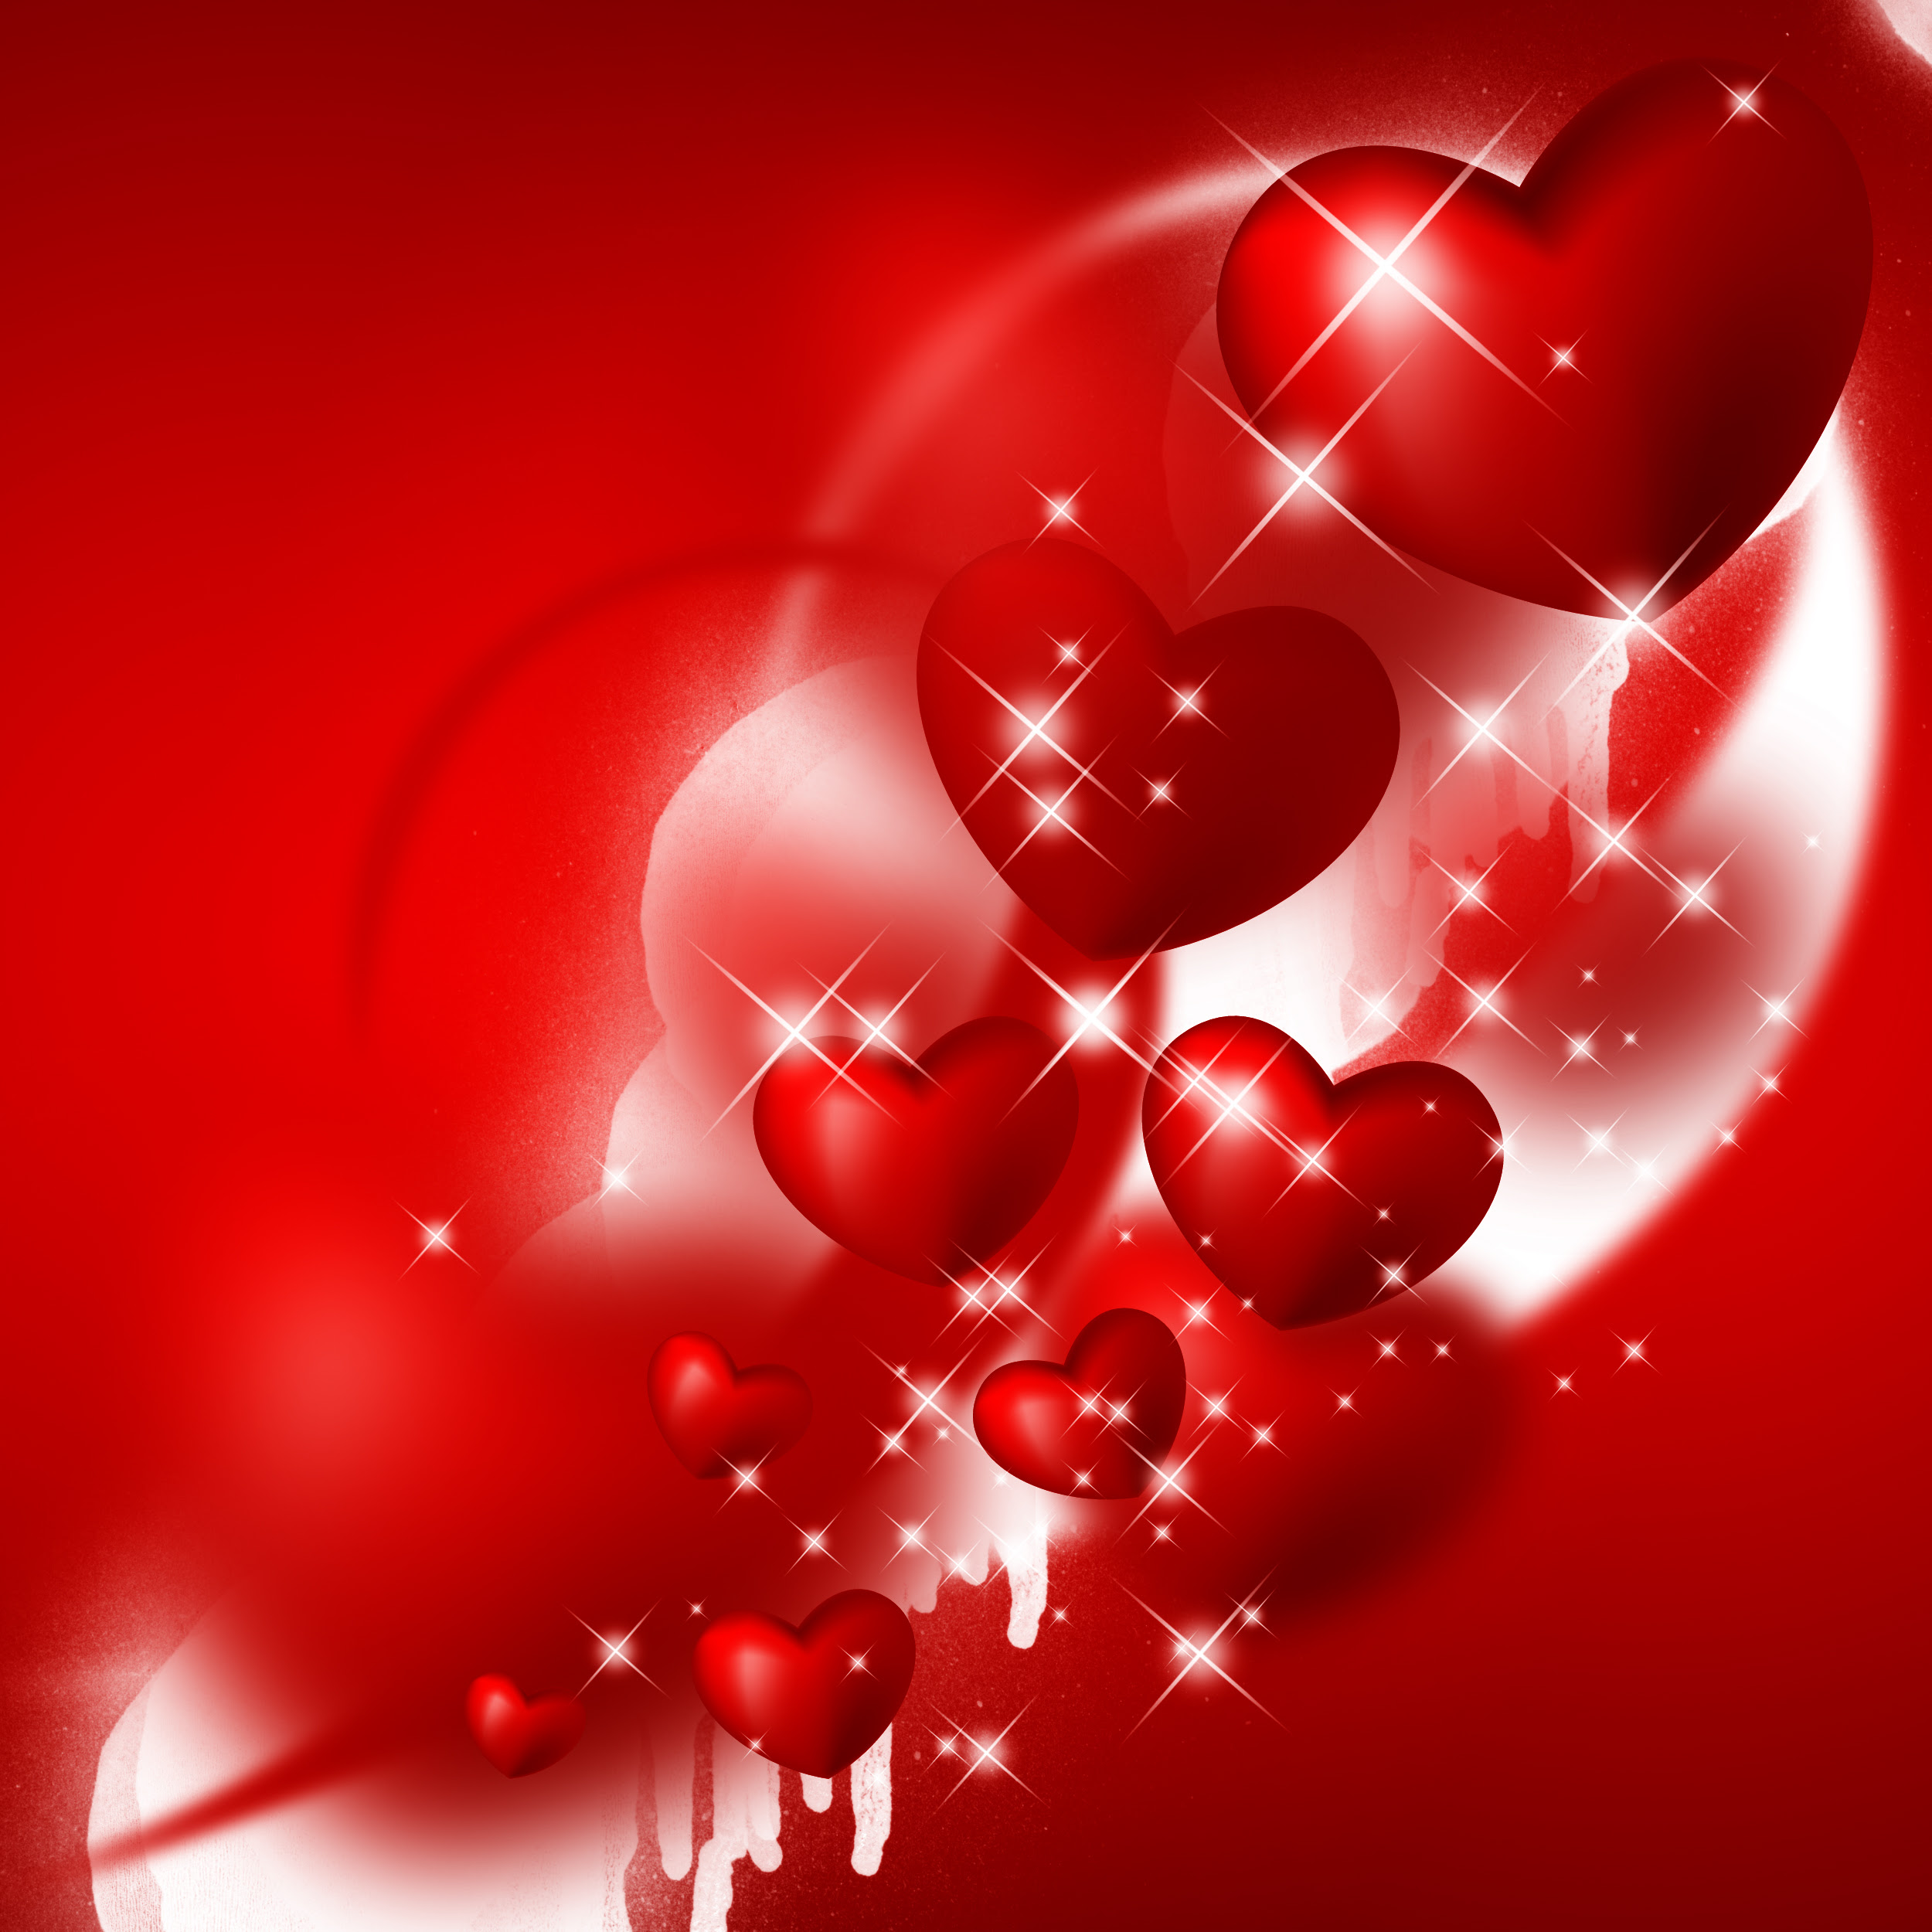 Free Valentine Backgrounds  Free Downloads and Addons for Photoshop